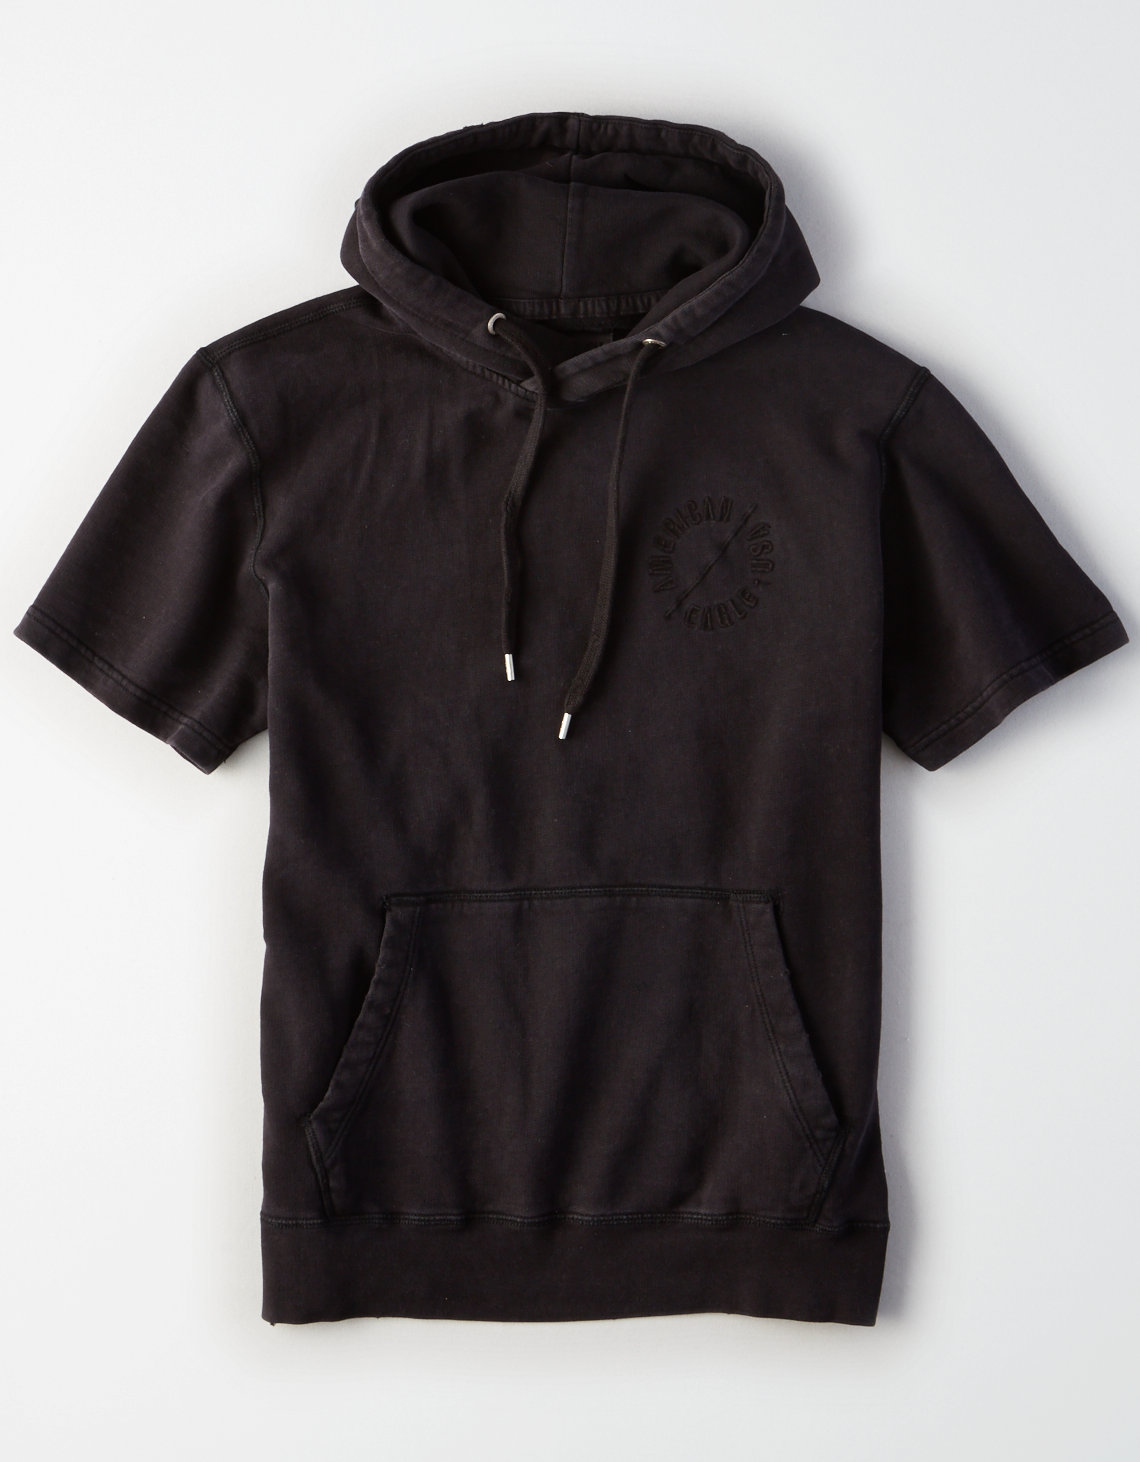 AE Lived & Loved Short Sleeve Hoodie. Placeholder image. Product Image